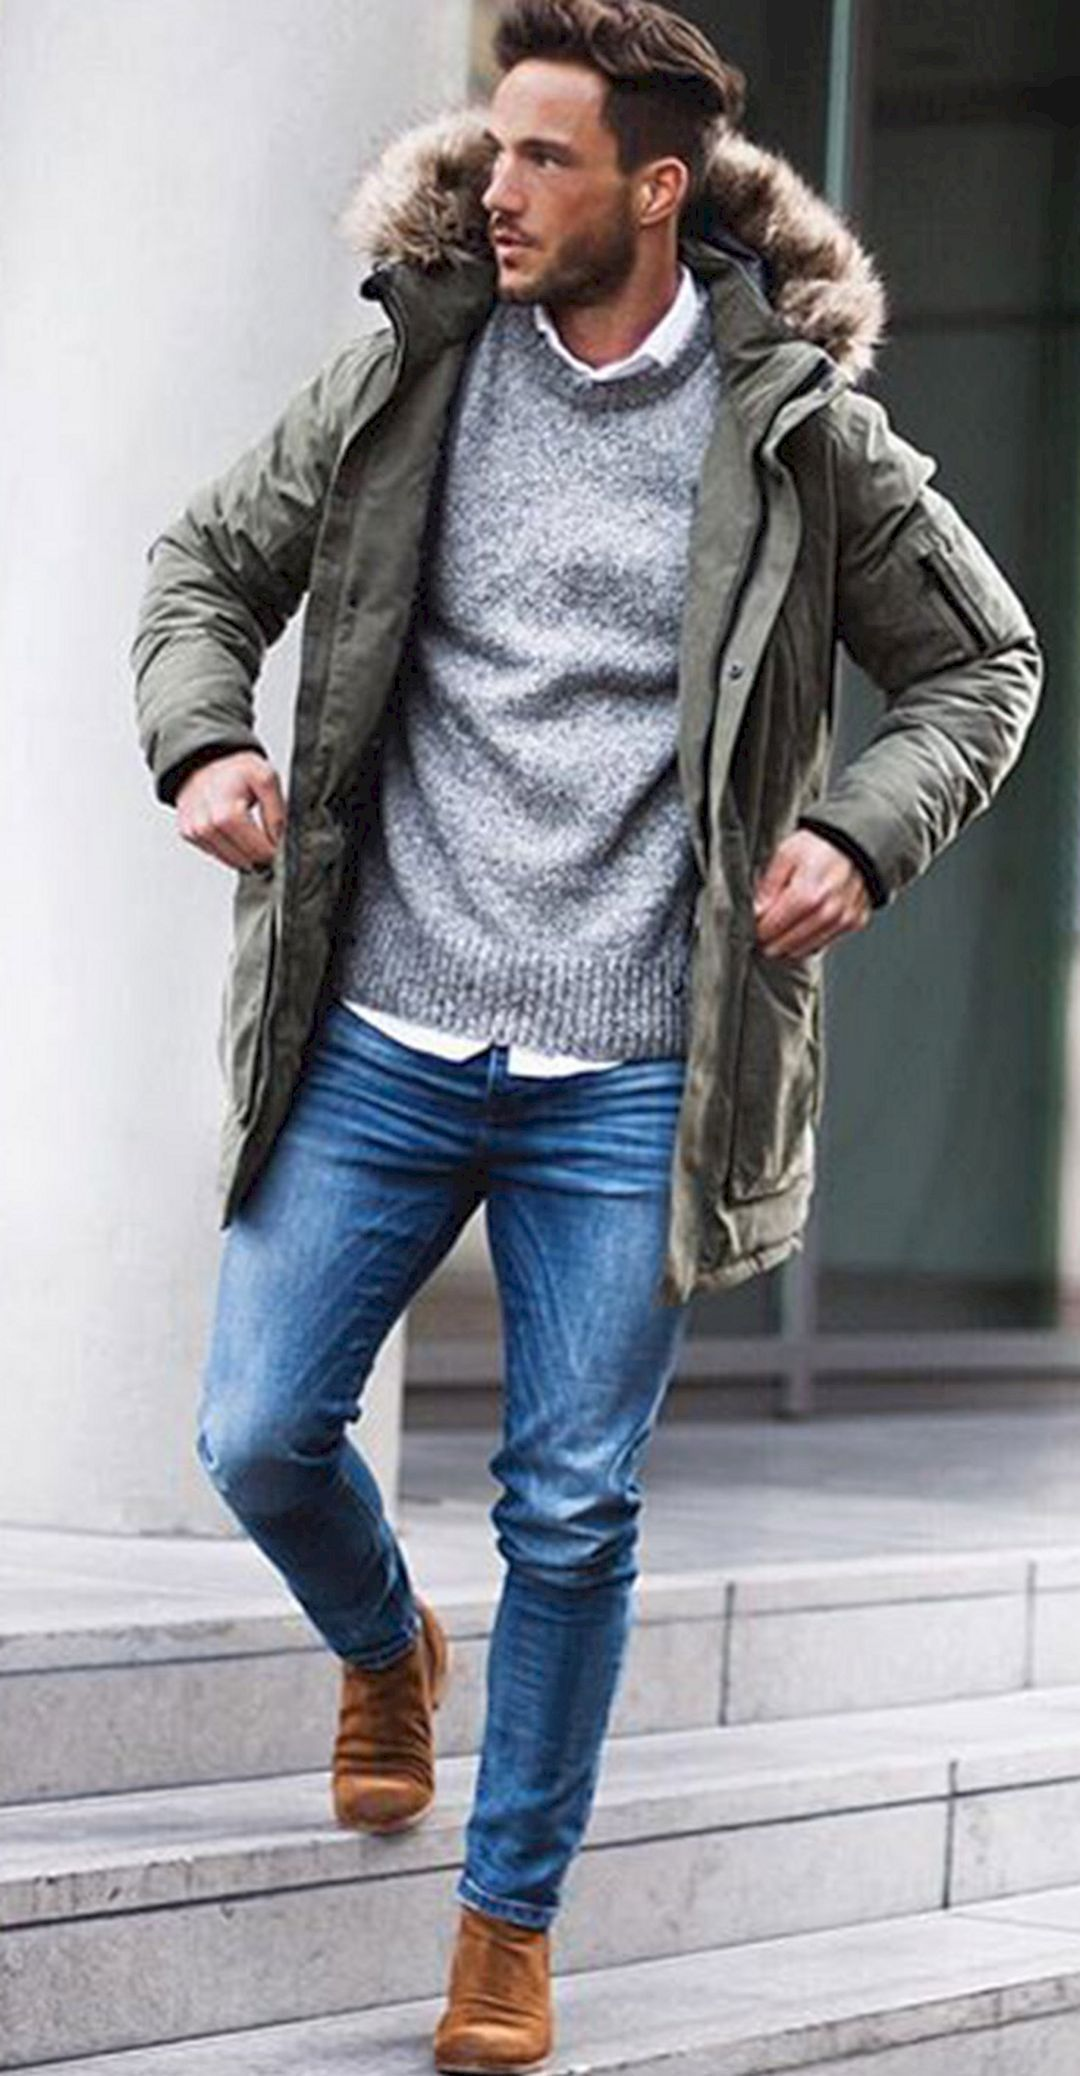 Men winter casual outfit ideas 8 men 39 s fashion for Best dress shirts nyc